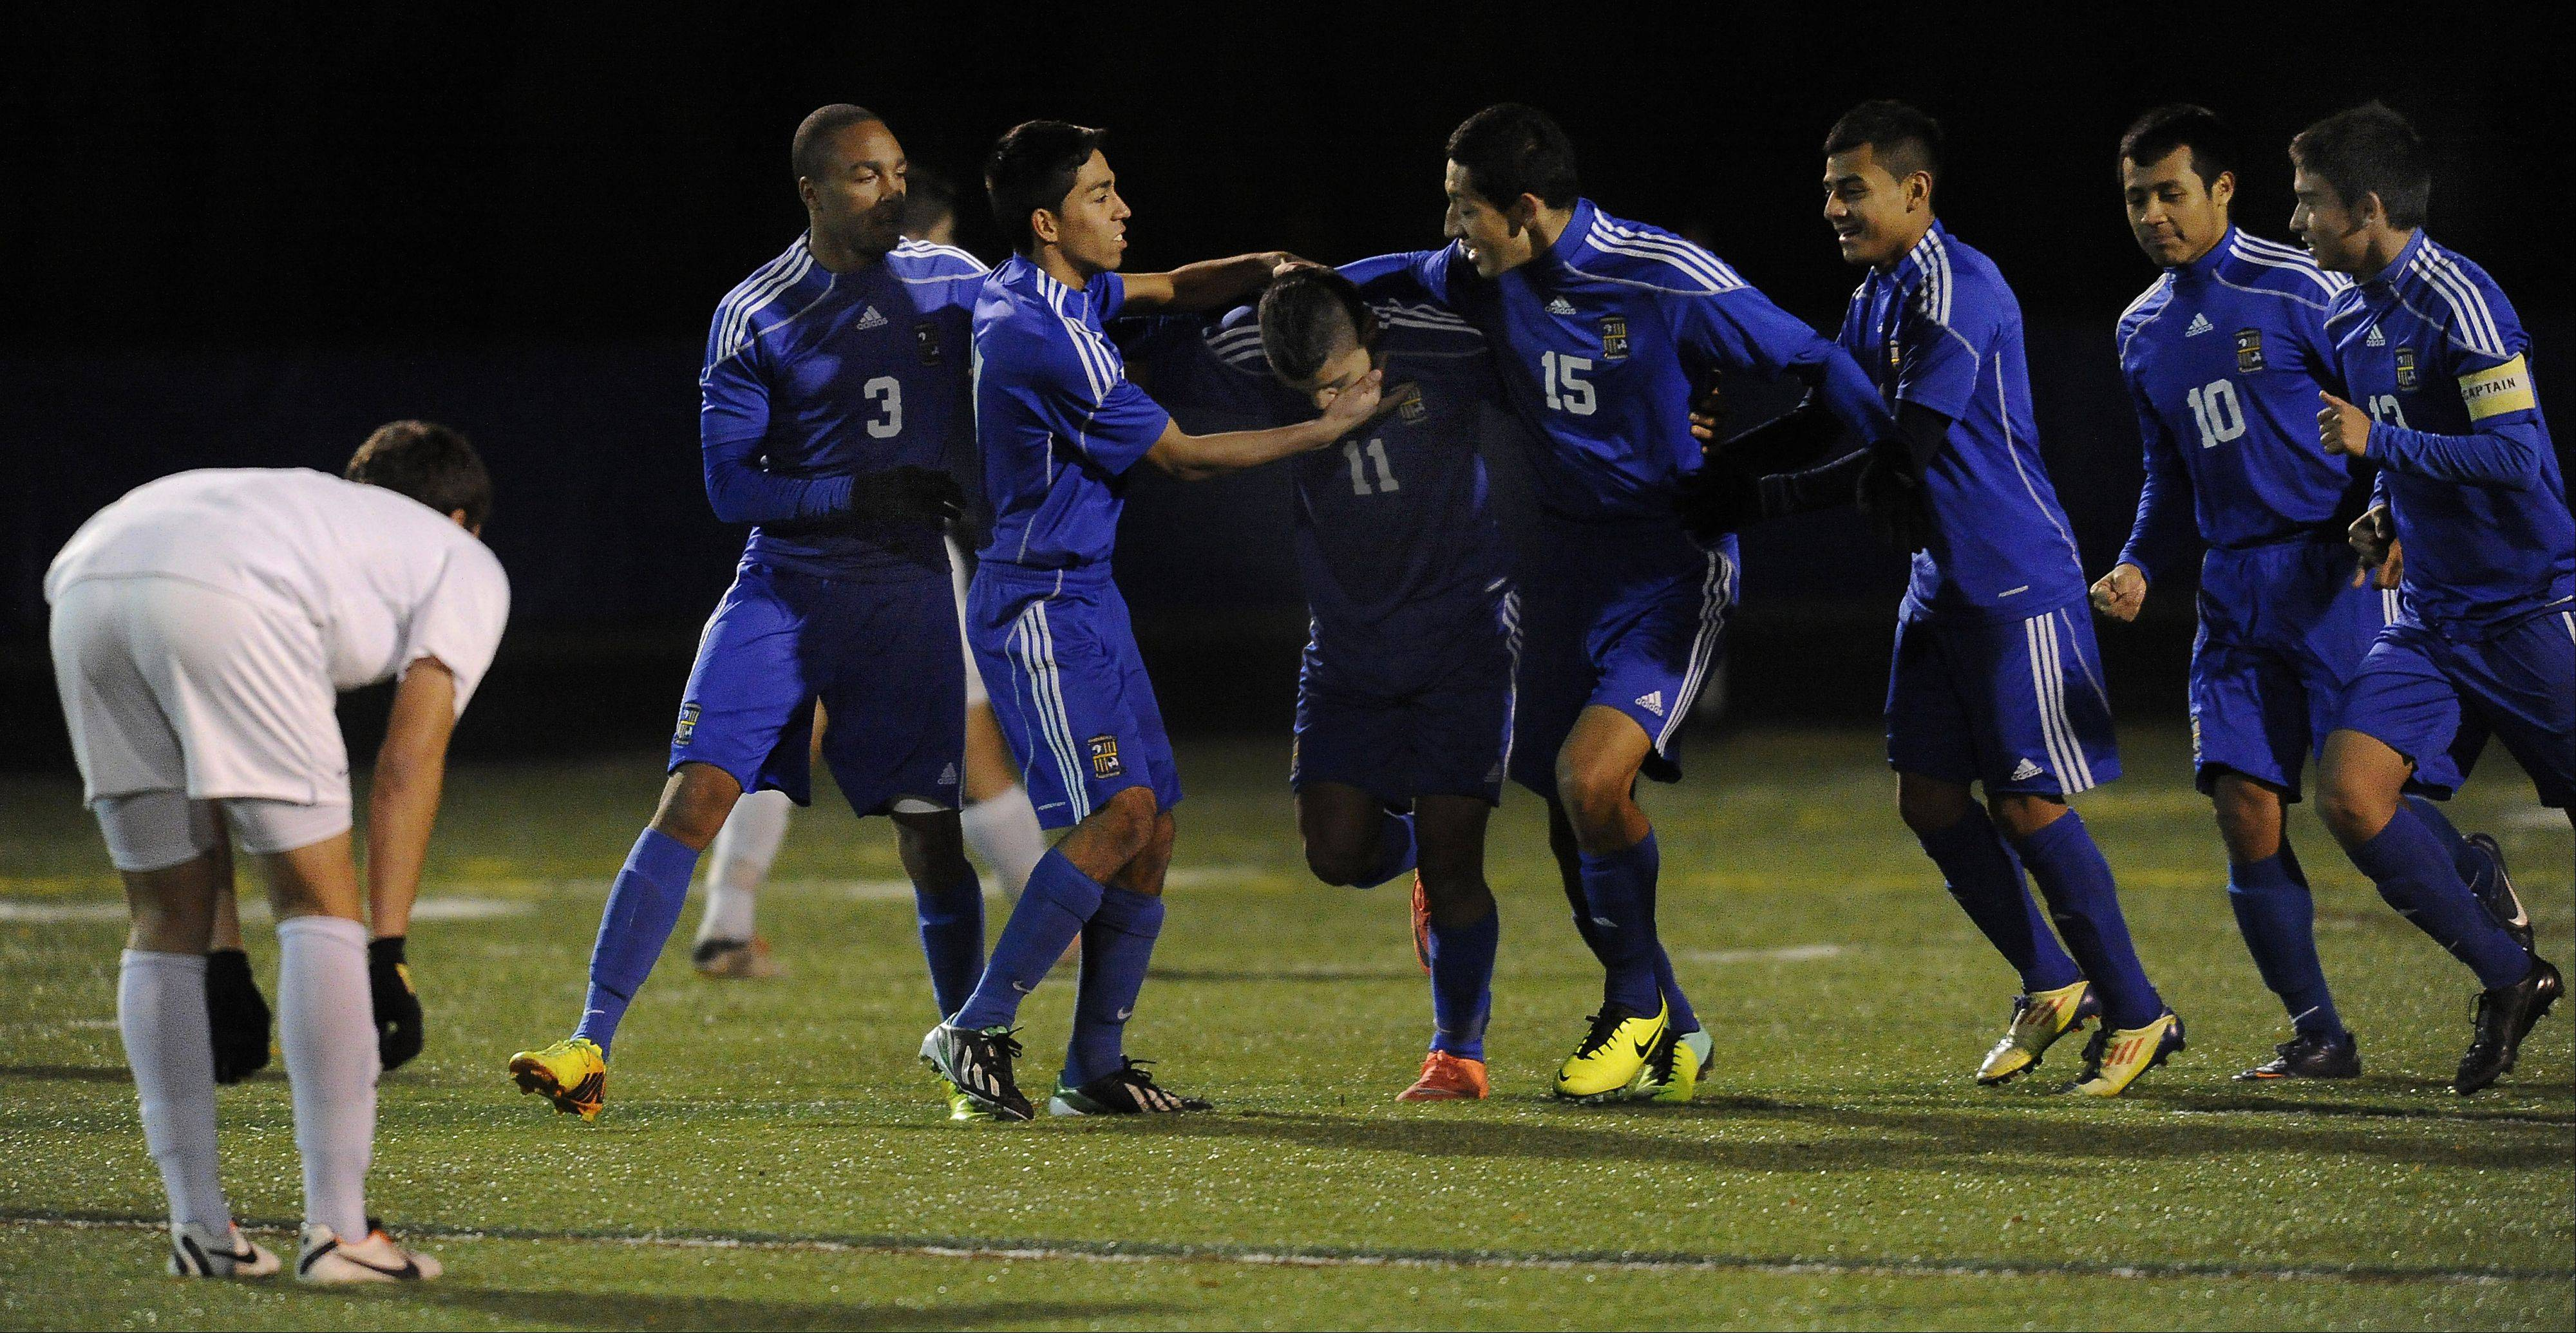 Wheeling�s Luis Herrera, middle, scores the first goal as his teammates swarm him in the first period in the Class 3A boys soccer state semifinals at Hoffman Estates on Friday.